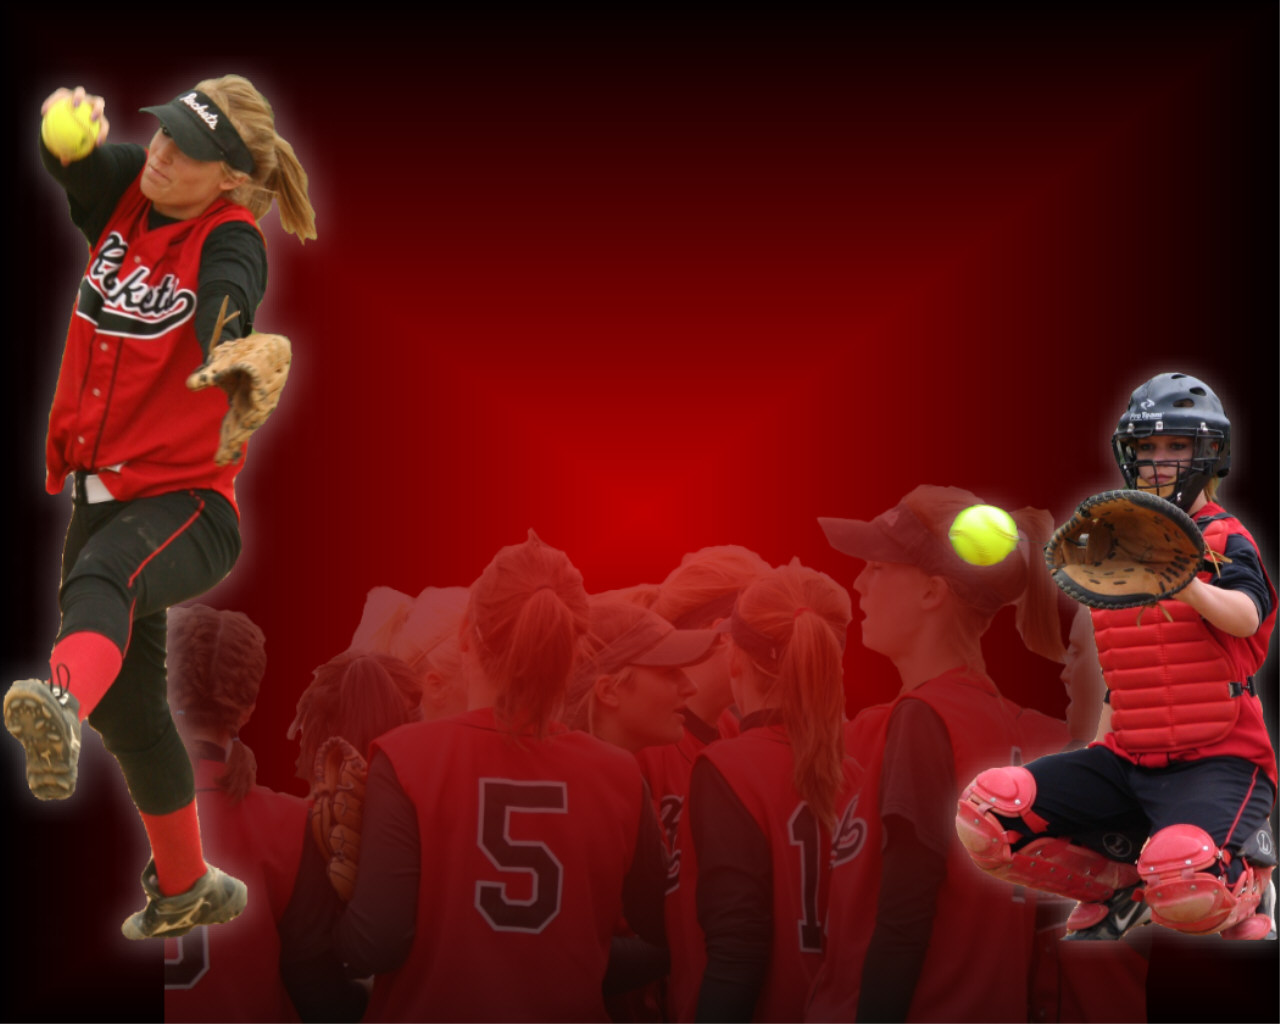 Pics photos related pictures softball wallpaper softball desktop - Softball Backgrounds For Desktop Images Pictures Becuo